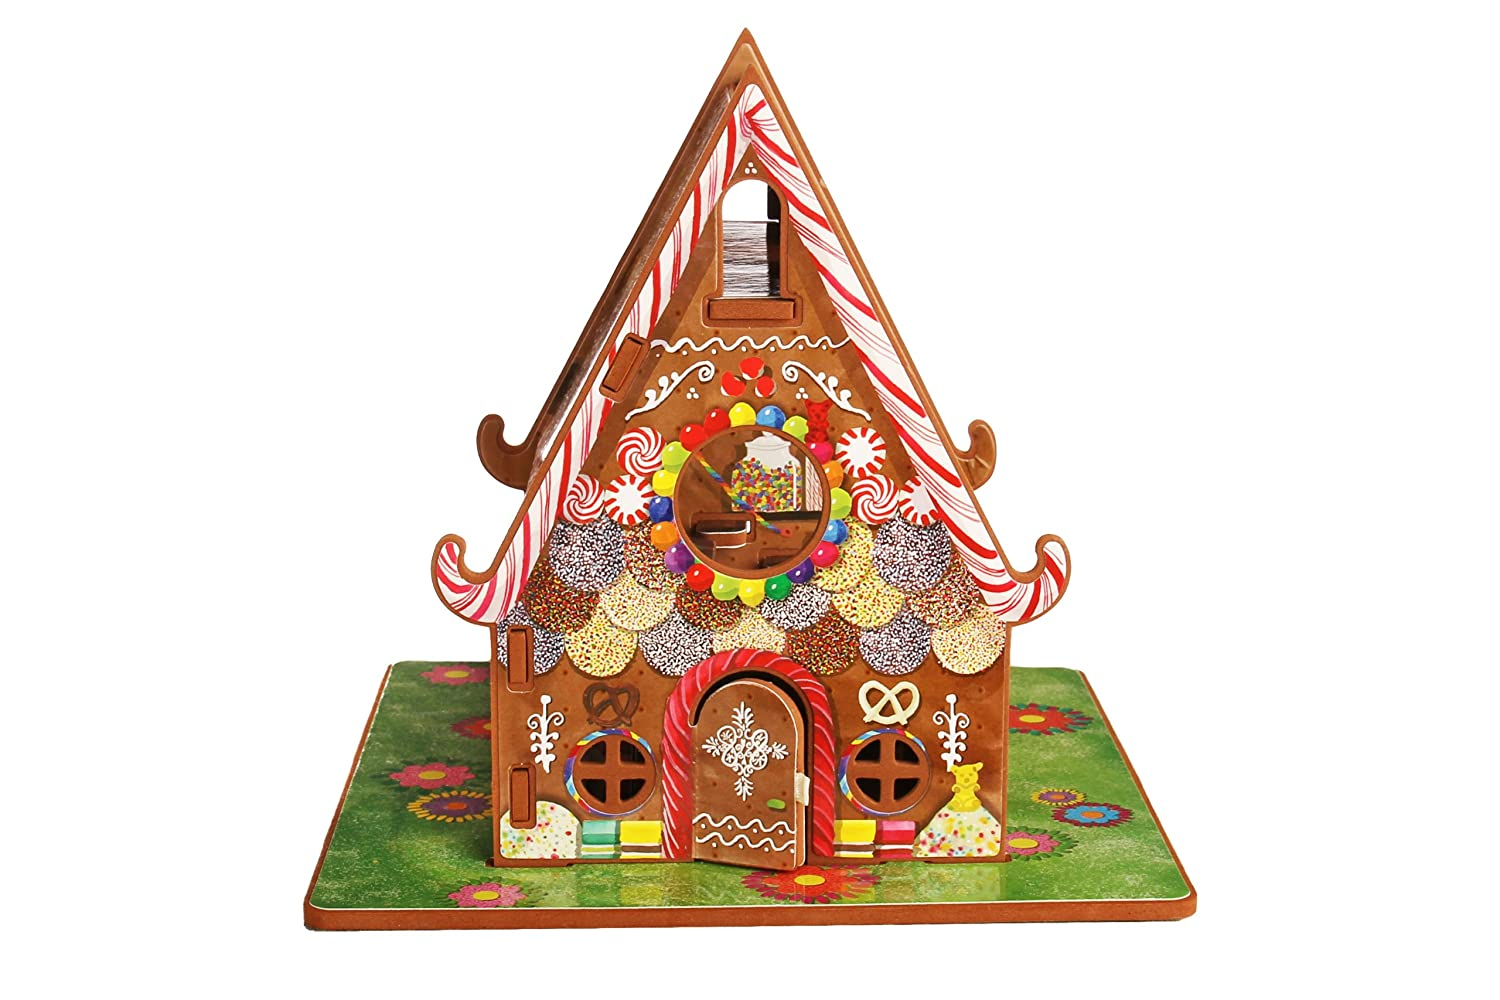 Hansel And Gretel Toy House And Storybook Playset Top